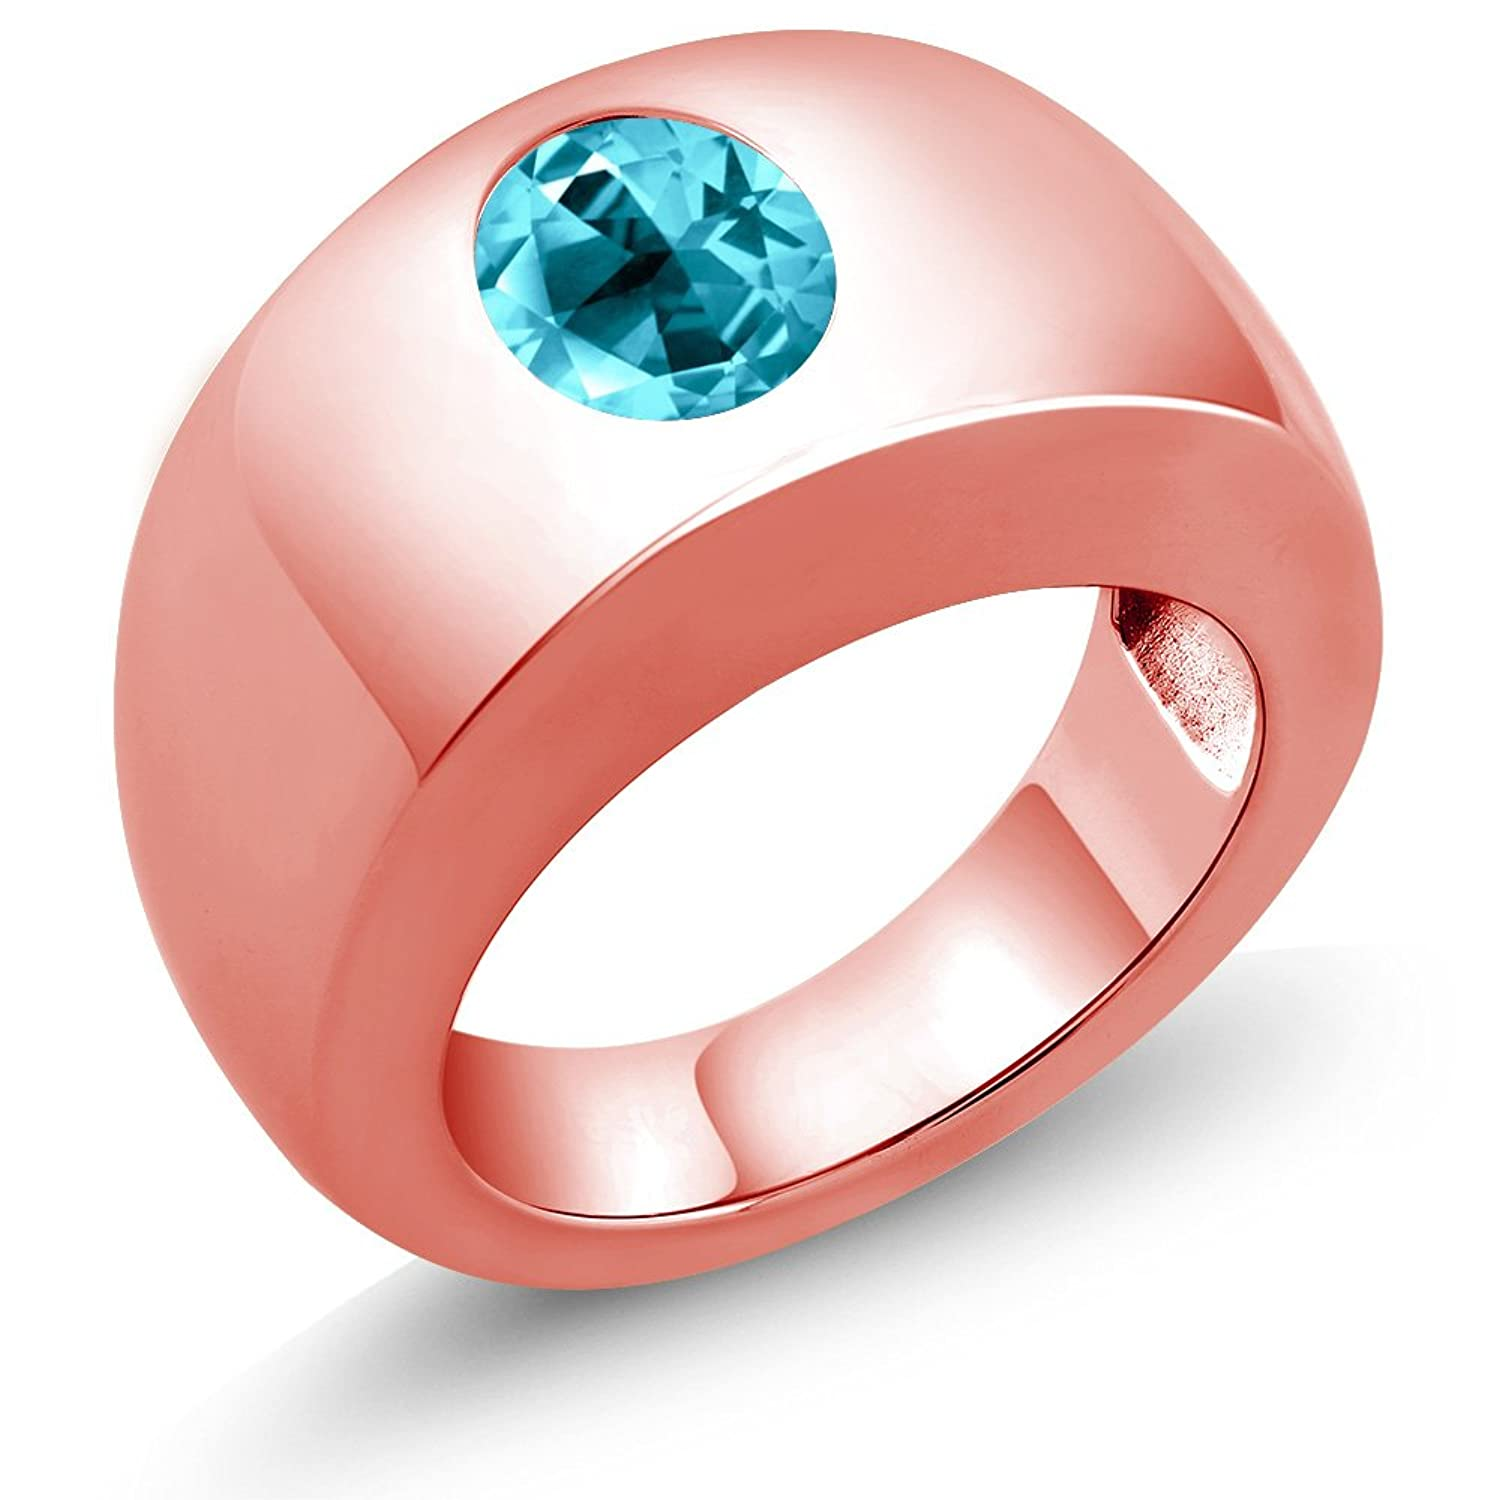 Amazon.com: 18K Rose Gold Ring Set with Oval Paraiba Topaz from ...